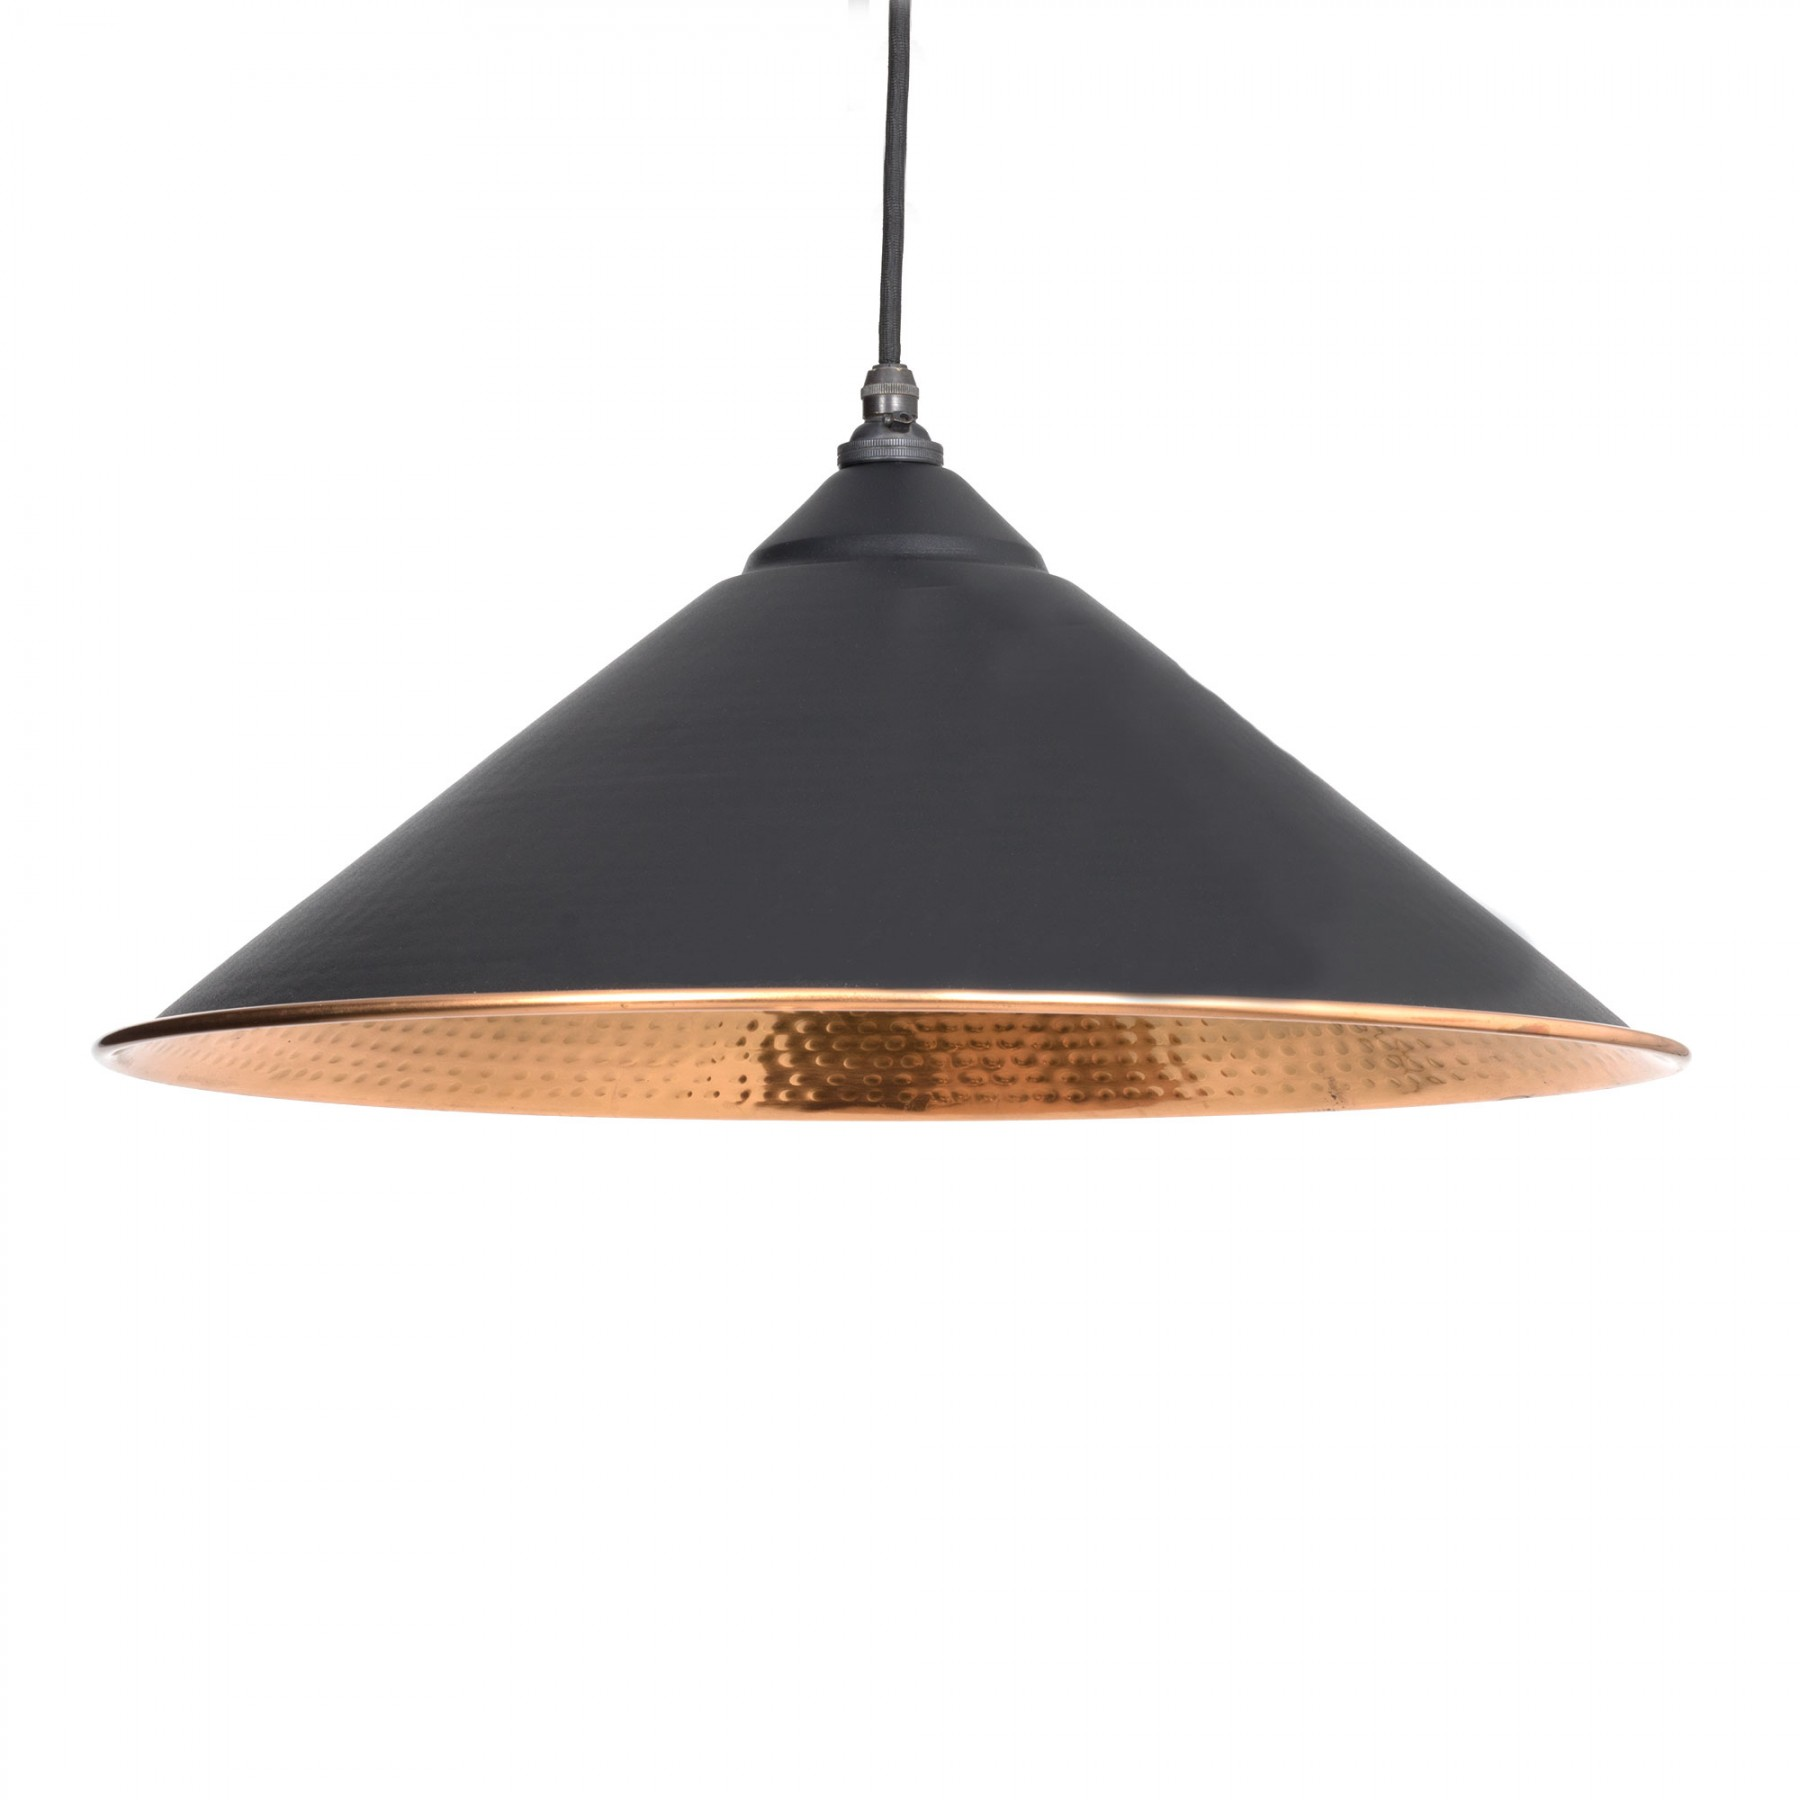 Copper Lighting Pendant Black Hammered Copper Yardley Pendant Light Period Home